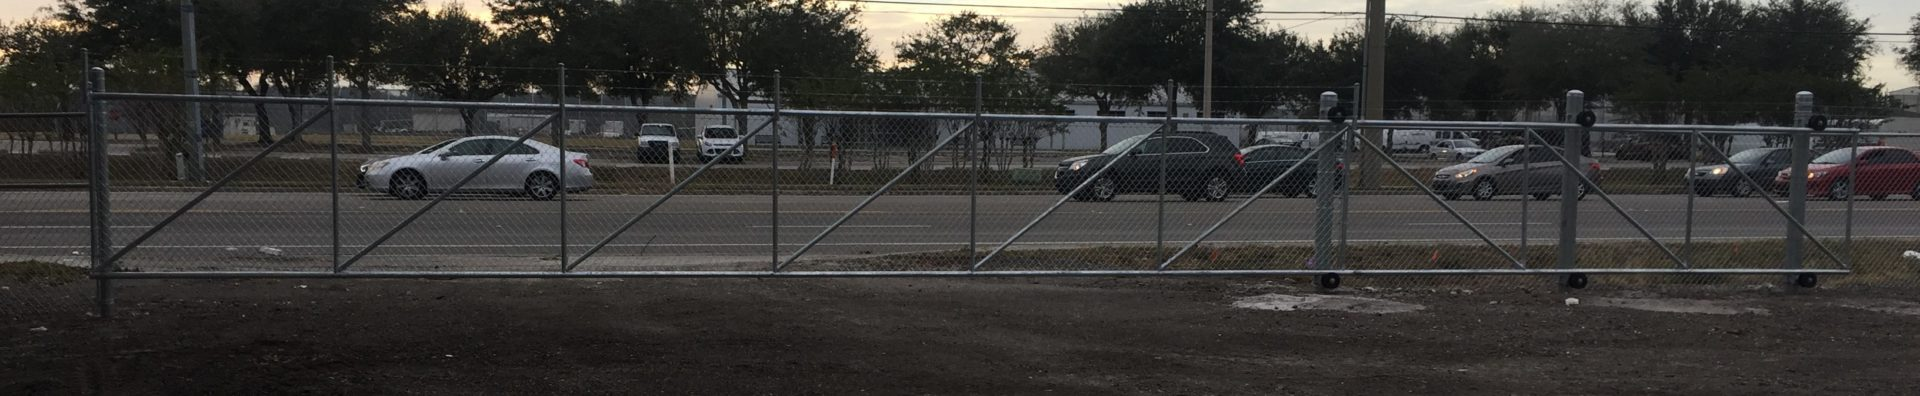 Tampa Commercial Fencing Fences For Commercial Buildings